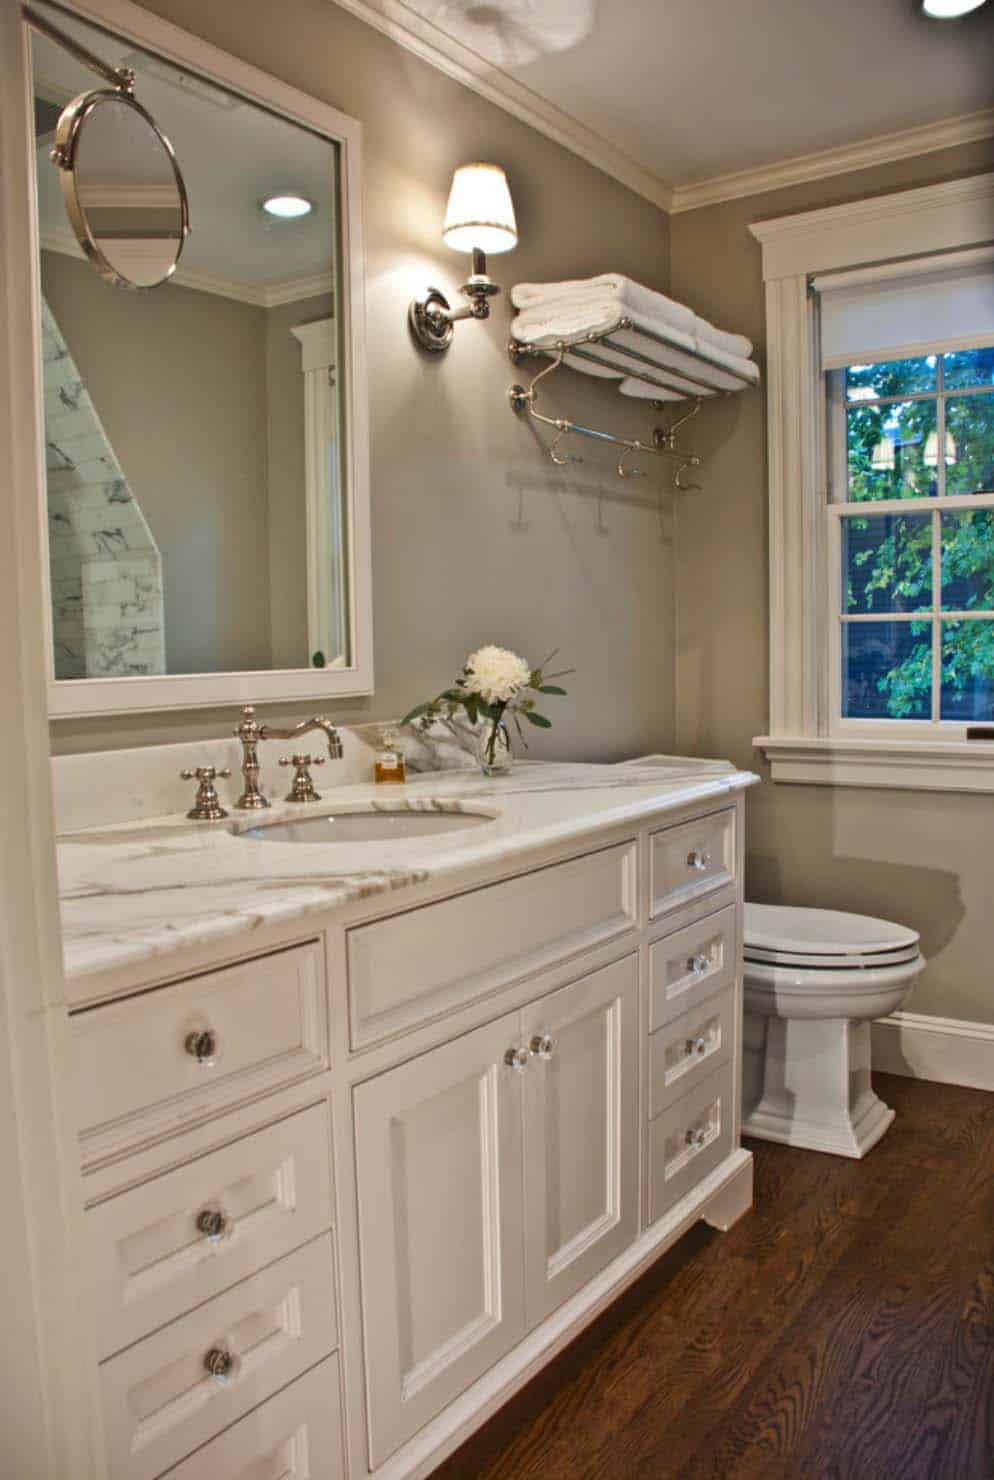 Traditional Bathroom Design Ideas-50-1 Kindesign